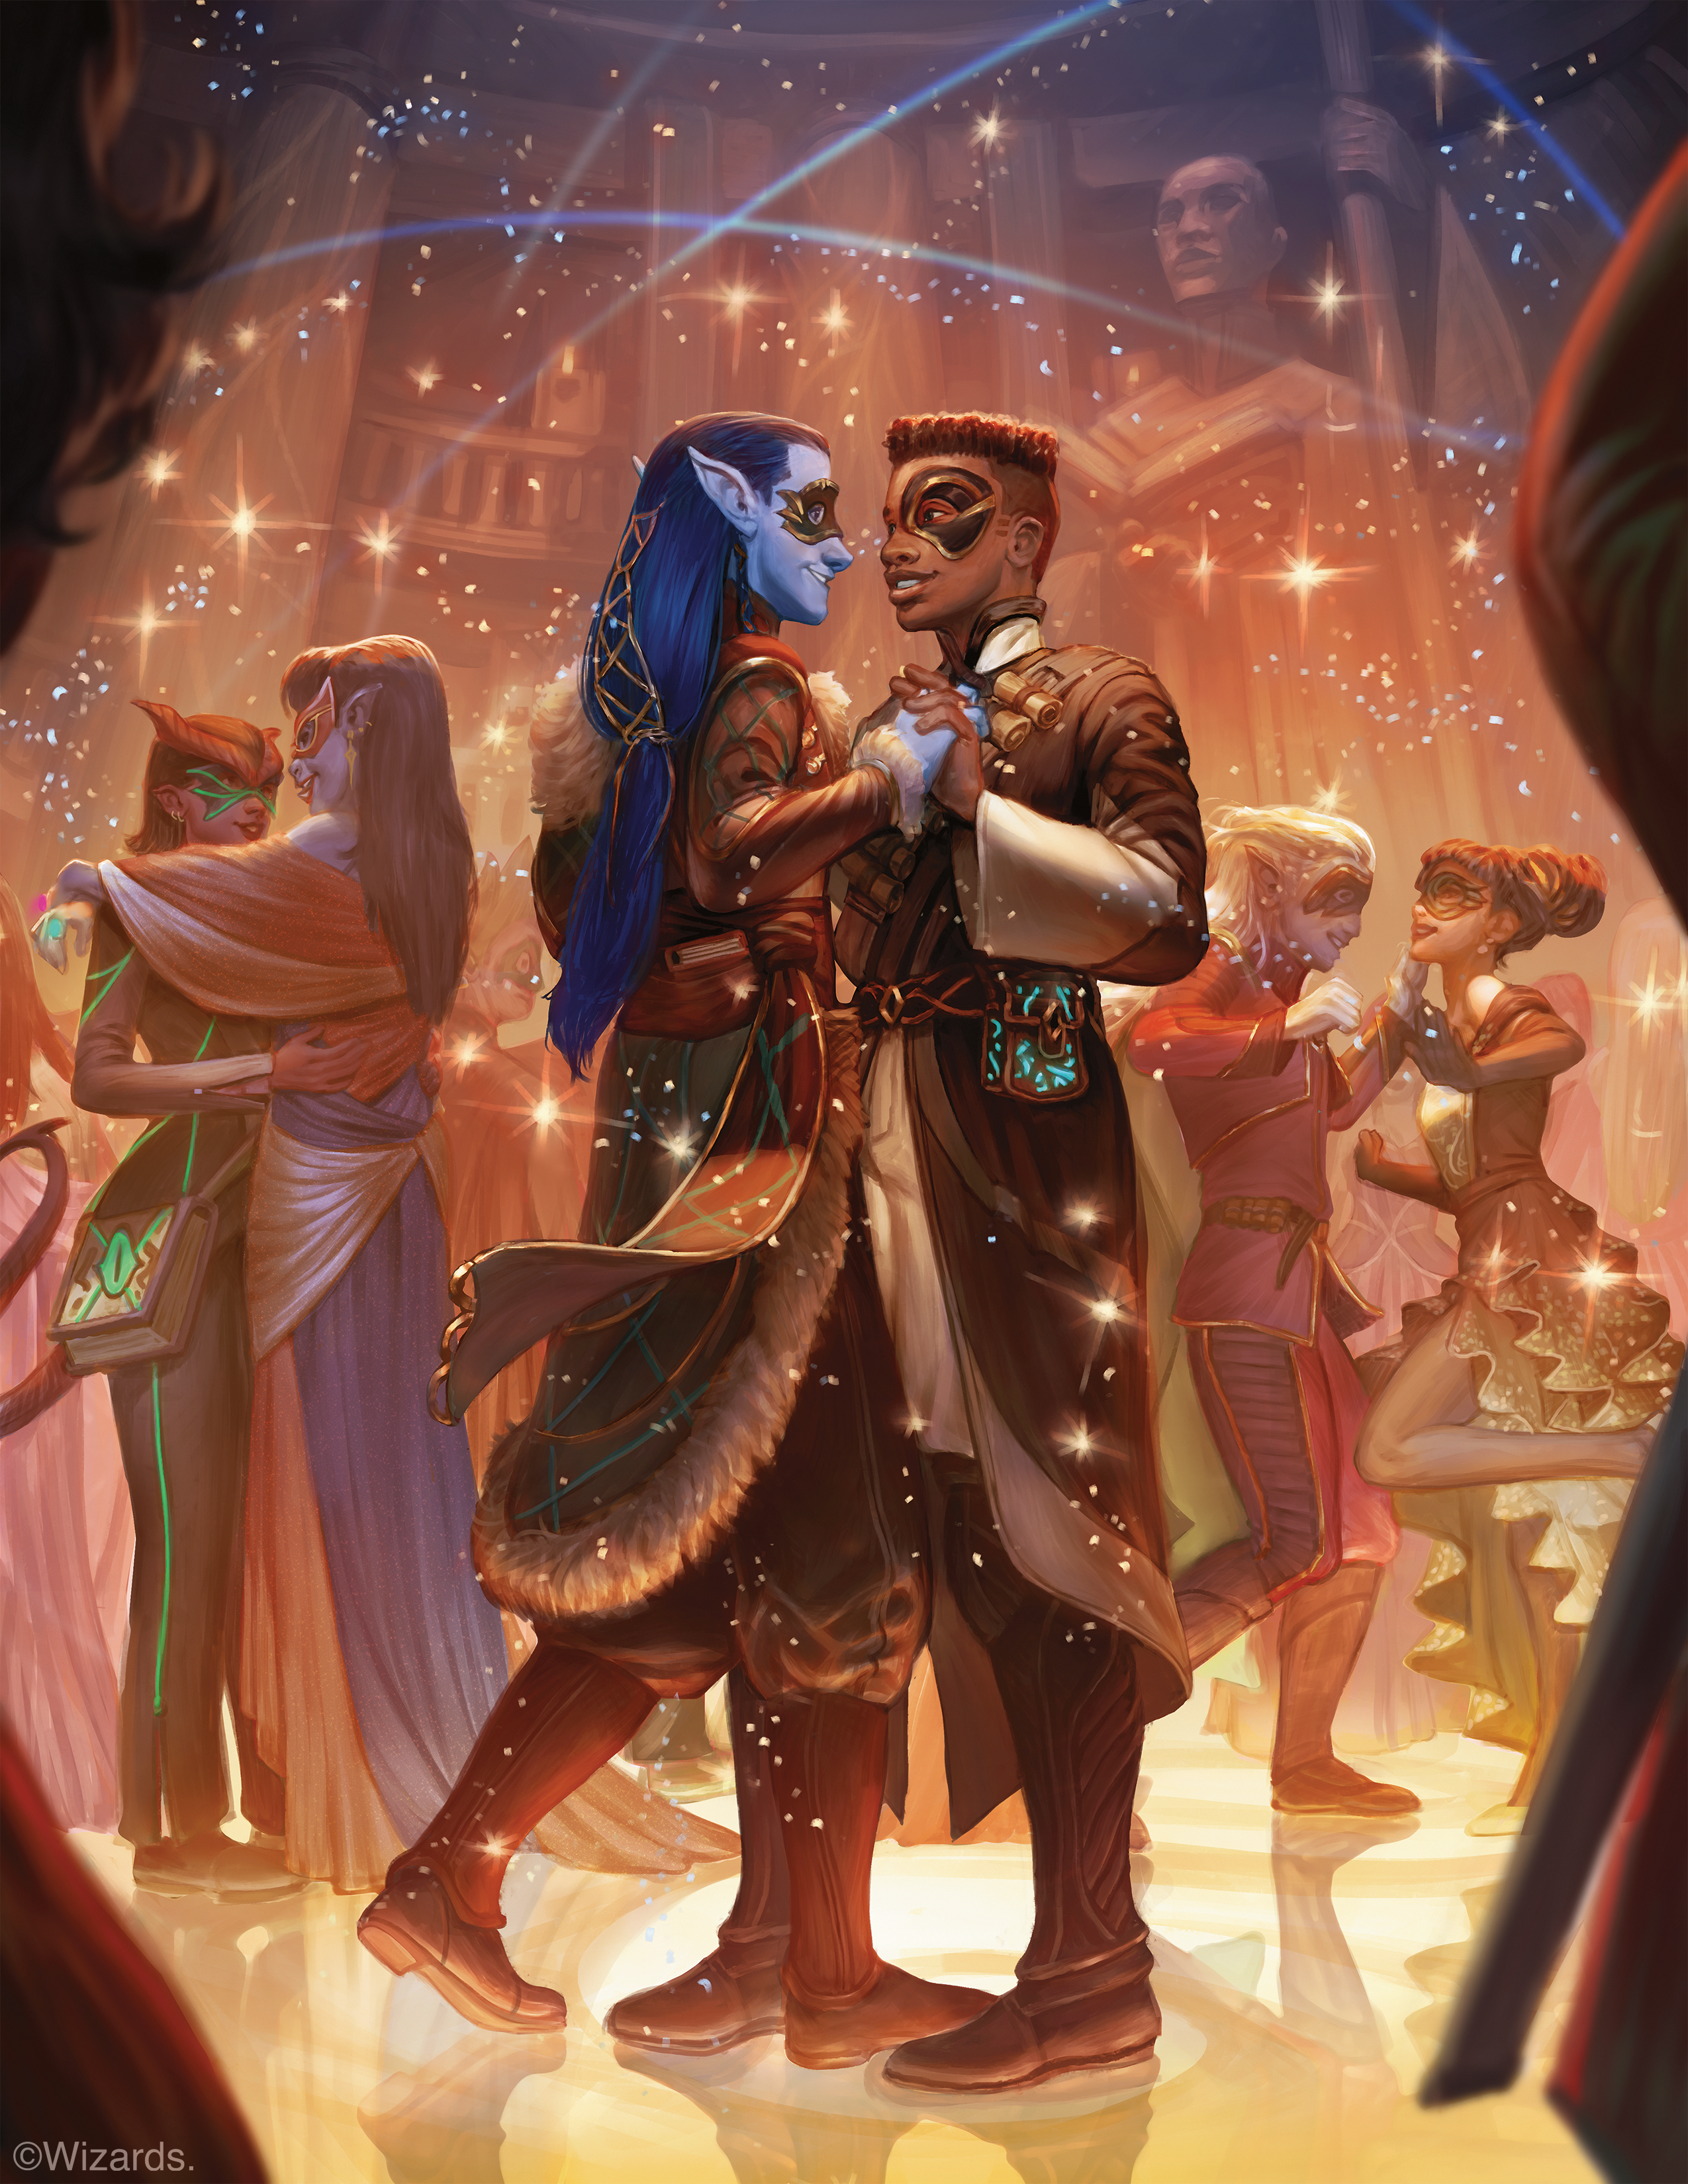 A school-dance scene from Dungeons & Dragons' adventure book Strixhaven: A Curriculum of Chaos